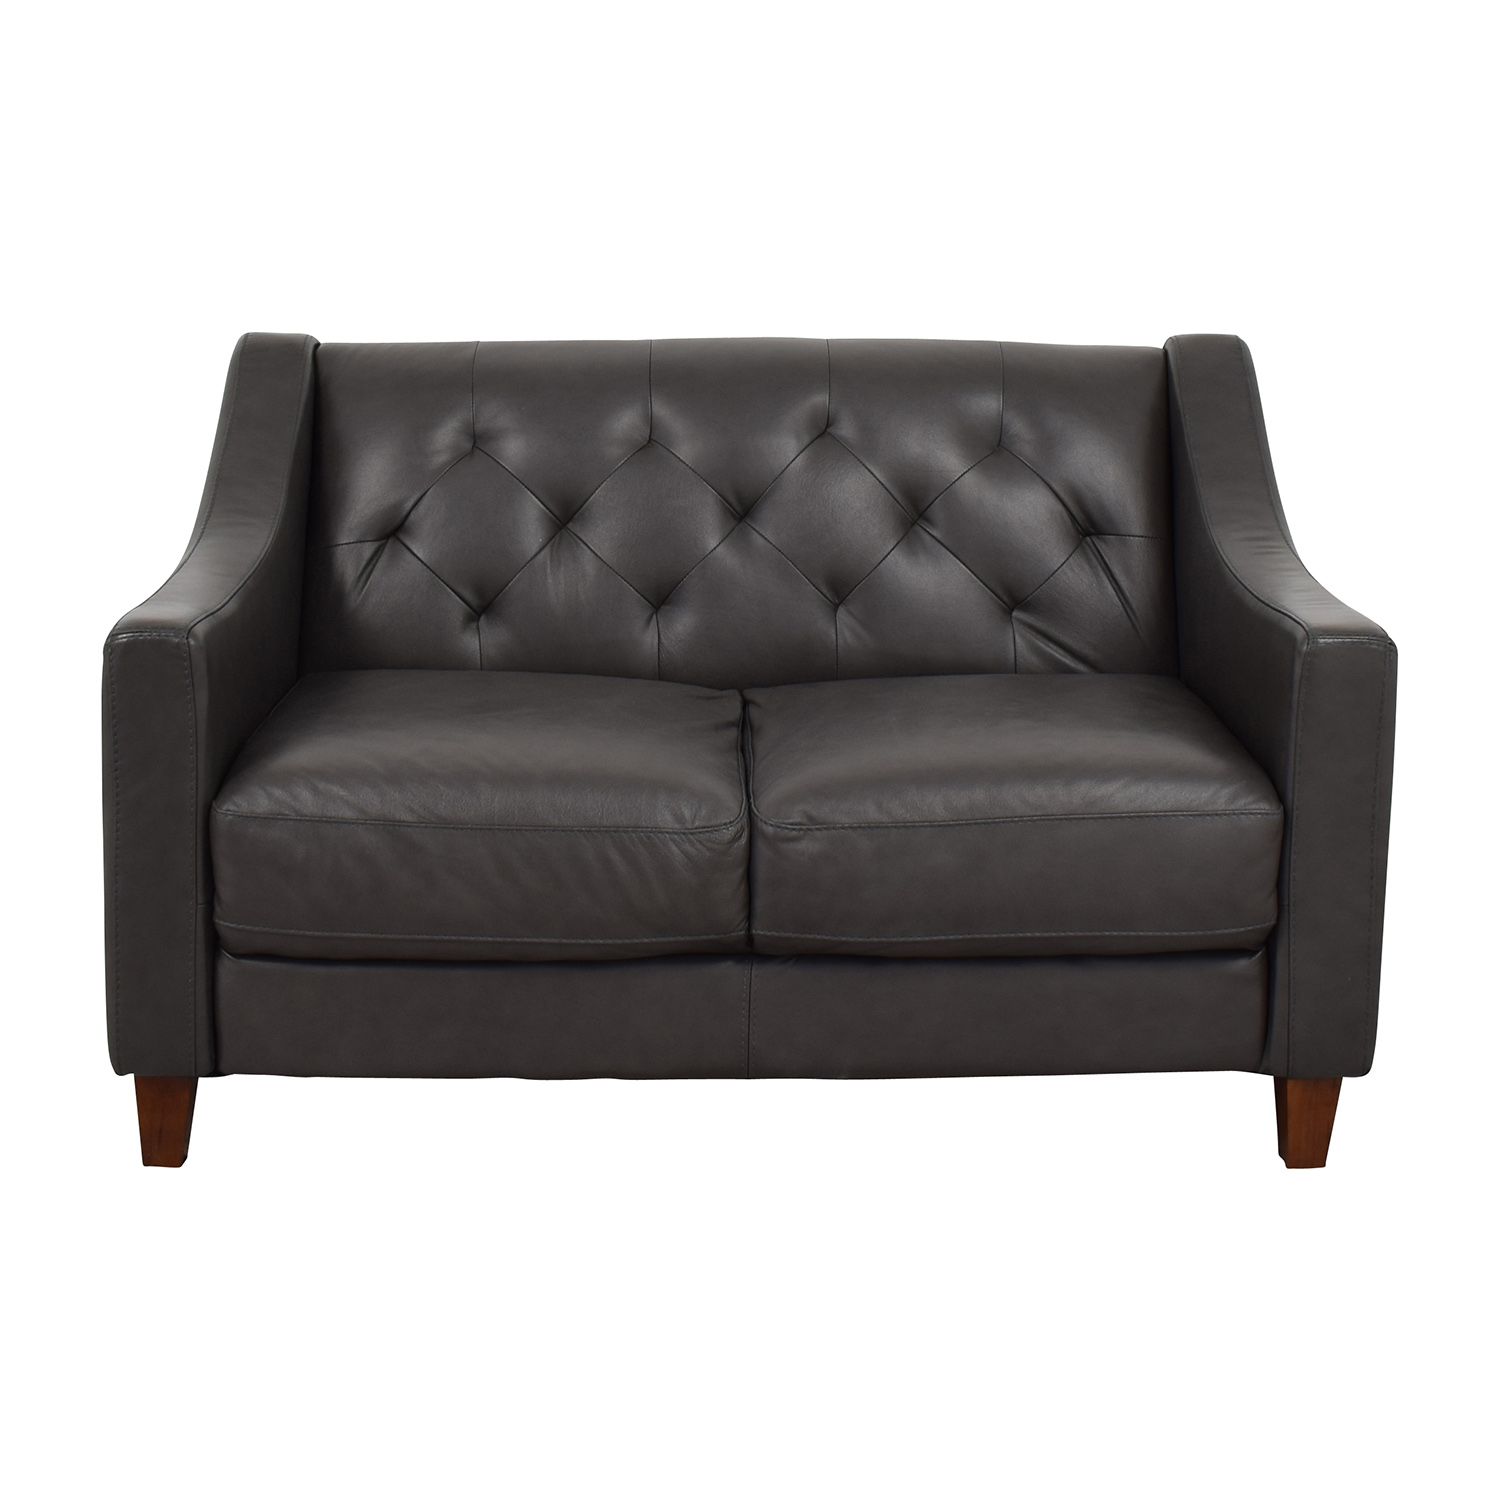 Macys Tufted Leather Loveseat / Loveseats